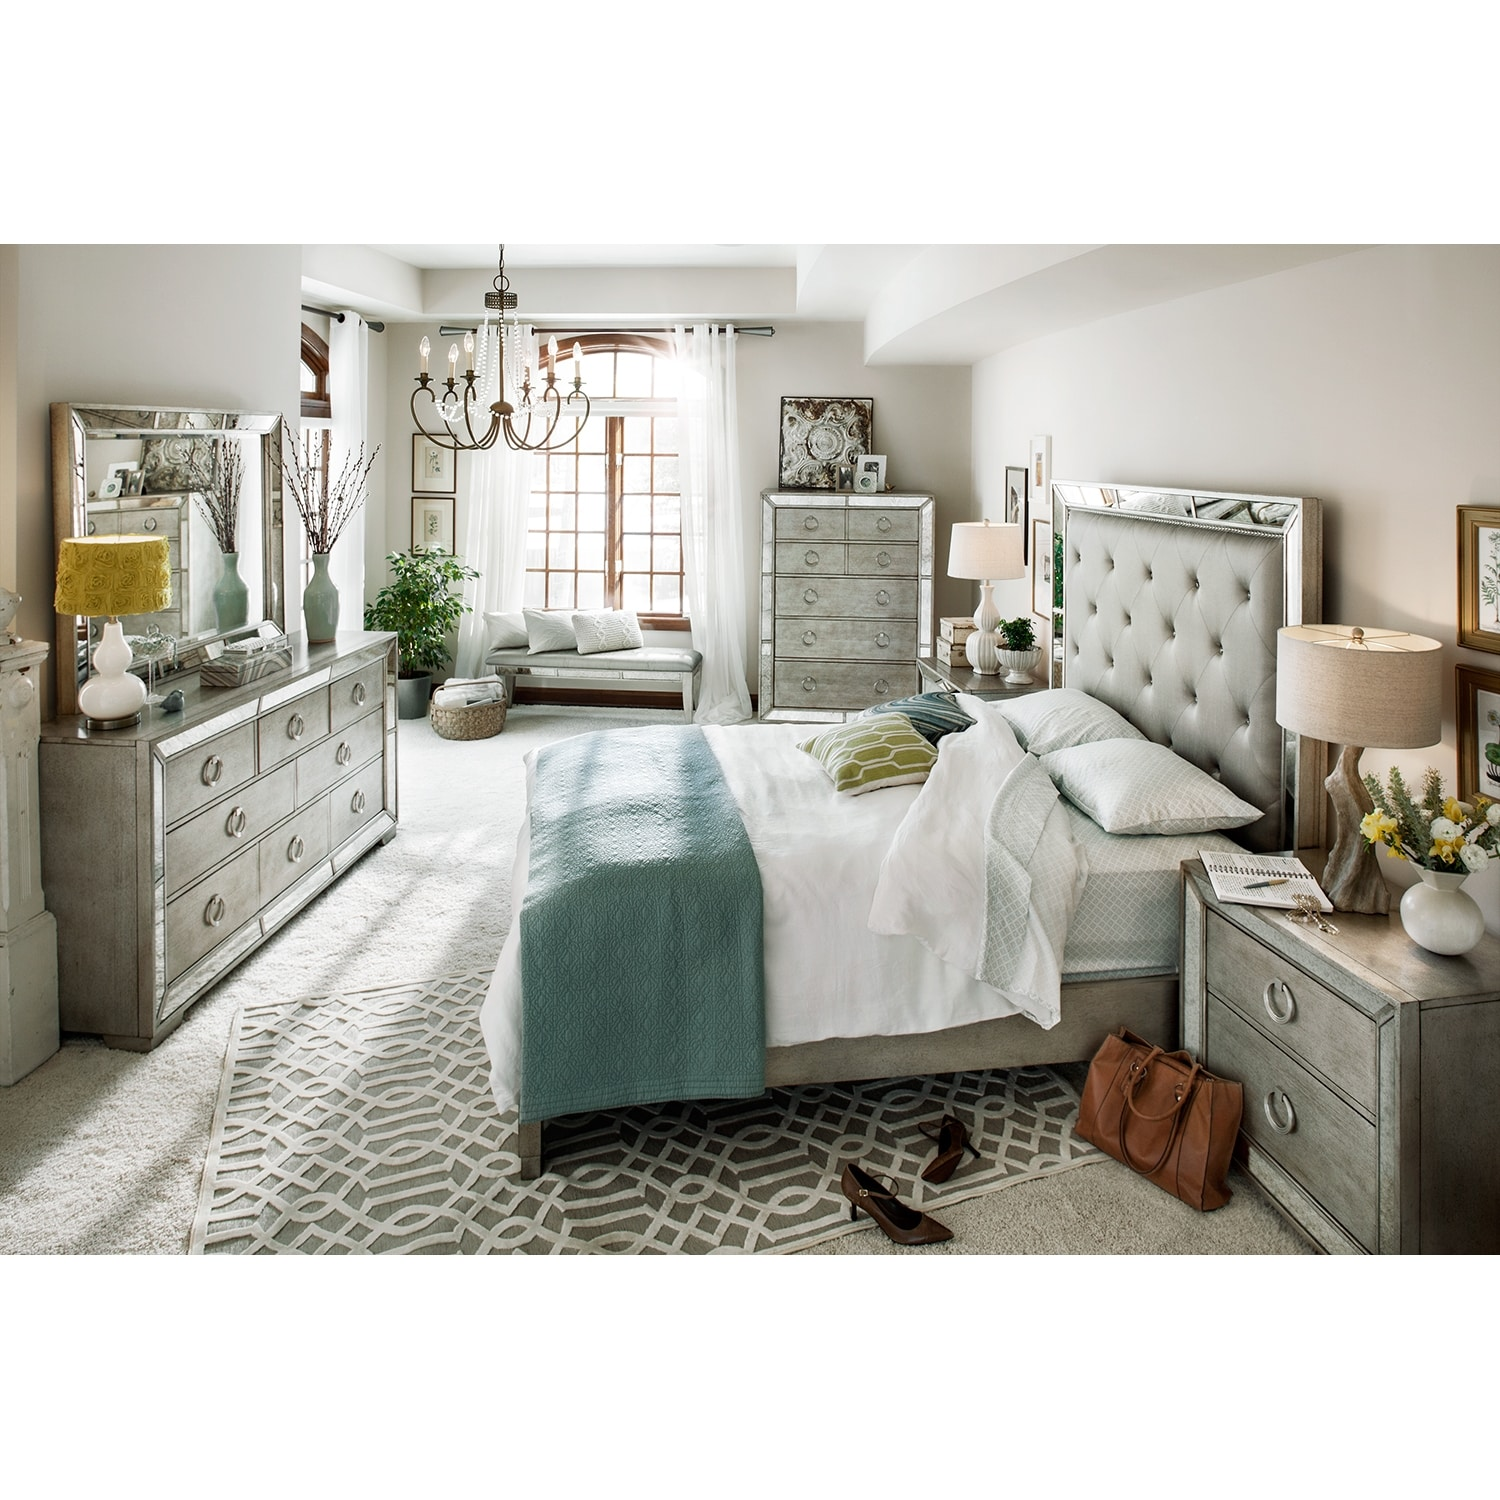 Bedroom Furniture - Angelina 6-Piece Queen Bedroom Set - Metallic